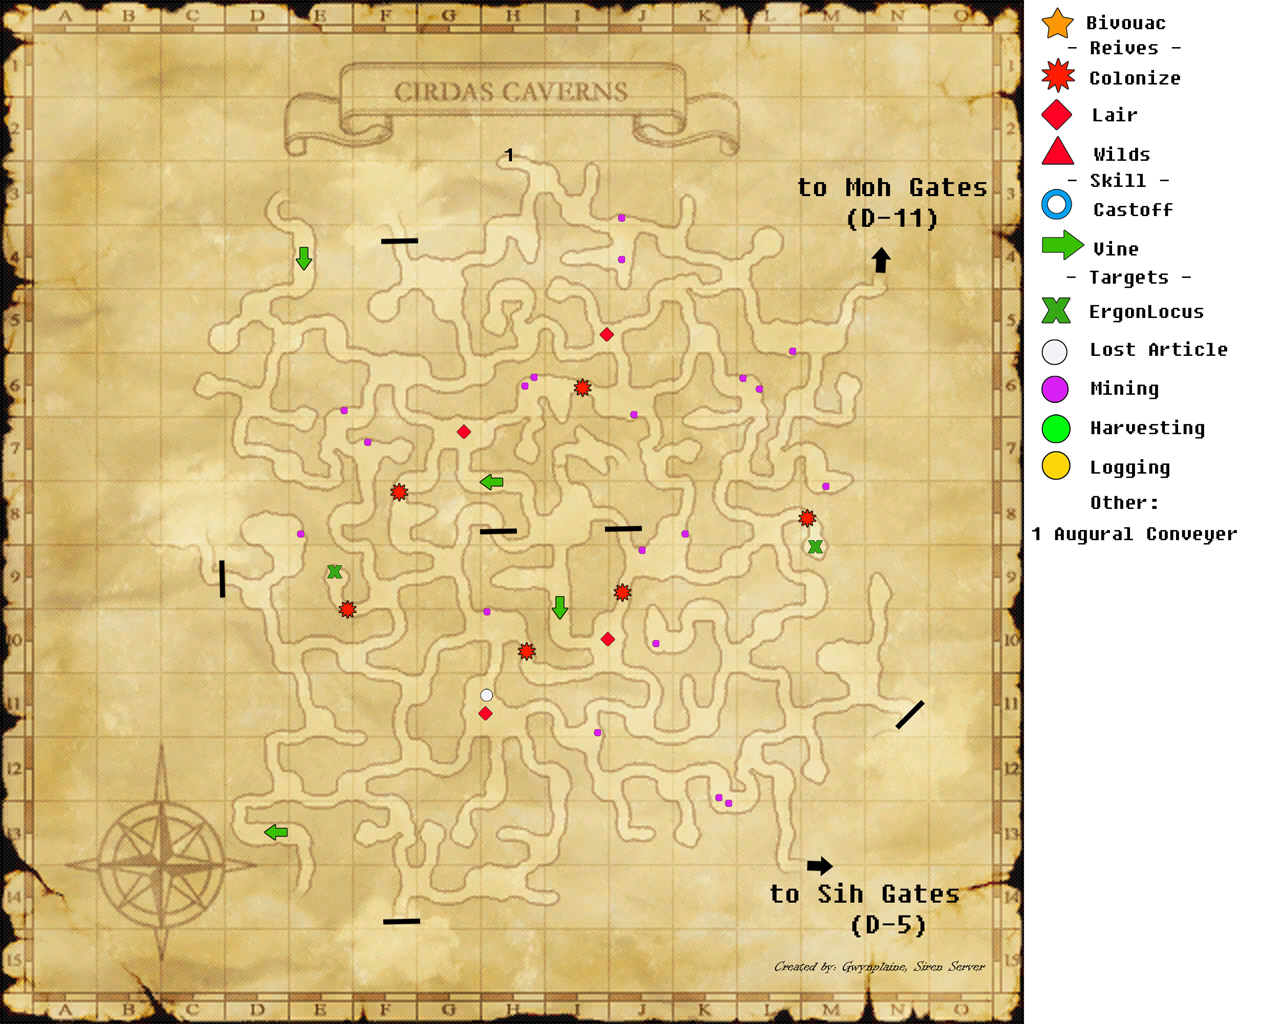 gwynplaine ffxi remember gh-67 believe bottom below area south half upper also reive bigger open areas mining back hopefully routes used going reives down gelid lair from might easy ones gates were tell where exactly yeah thread hypocritical missing cant tried speaking relatively colonization look iirc thru small pretty long time kamihr